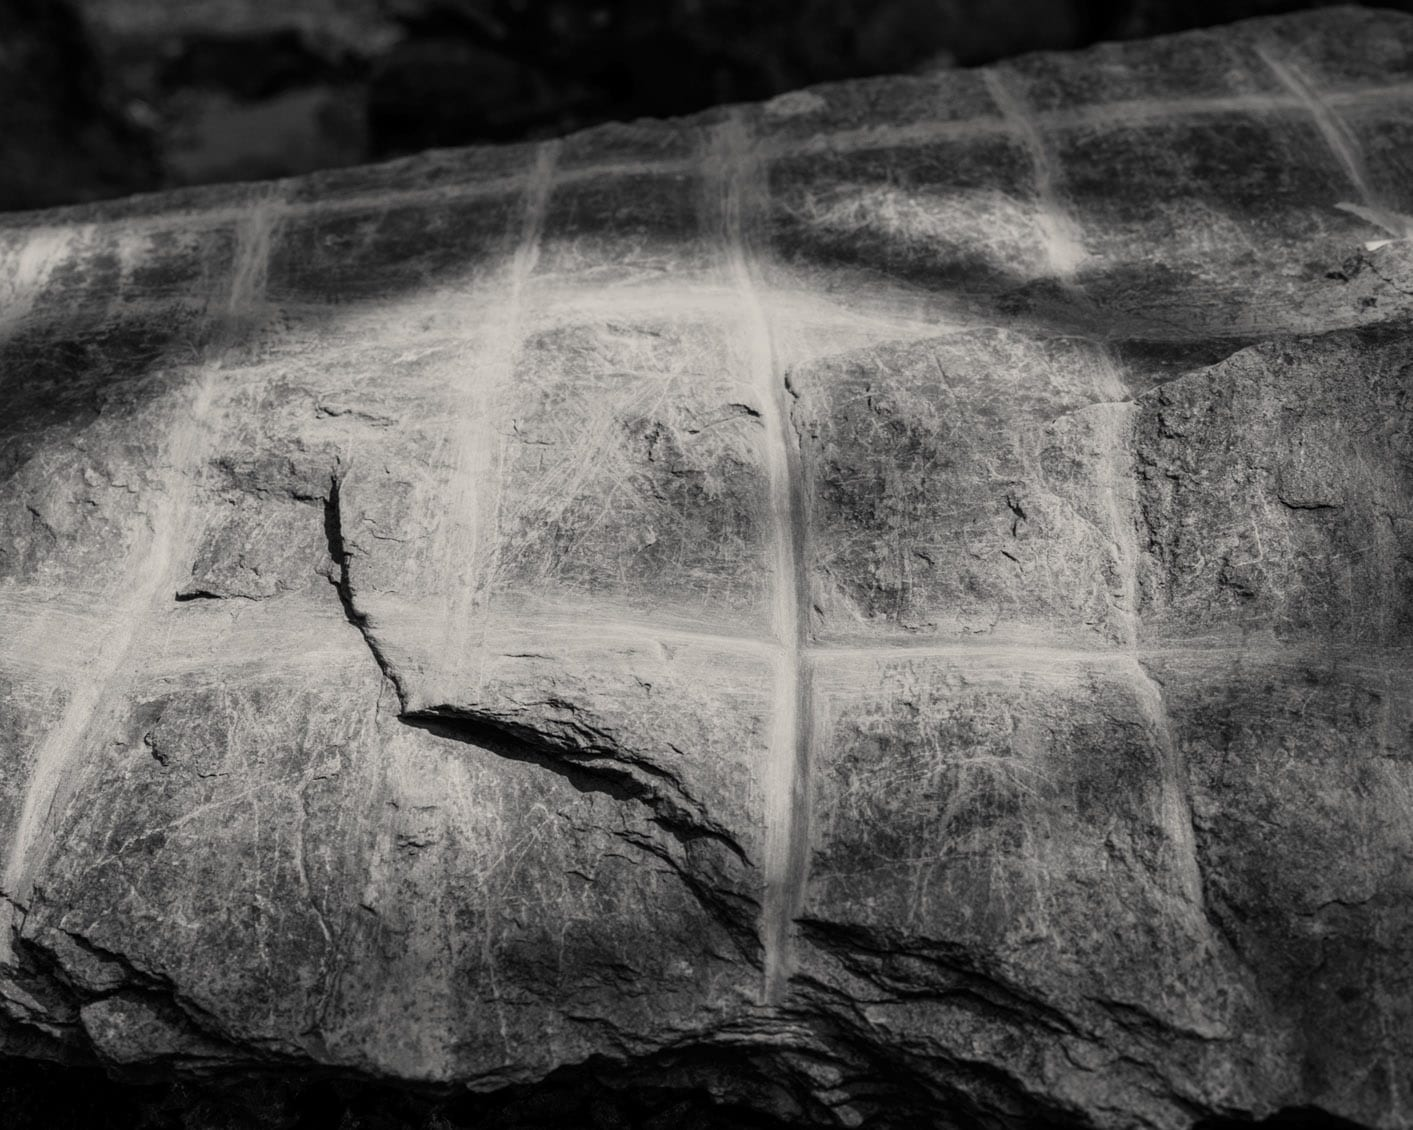 Untitled 40-Ex Voto-Alys Tomlinson-black and white photography-crosses carved into rock